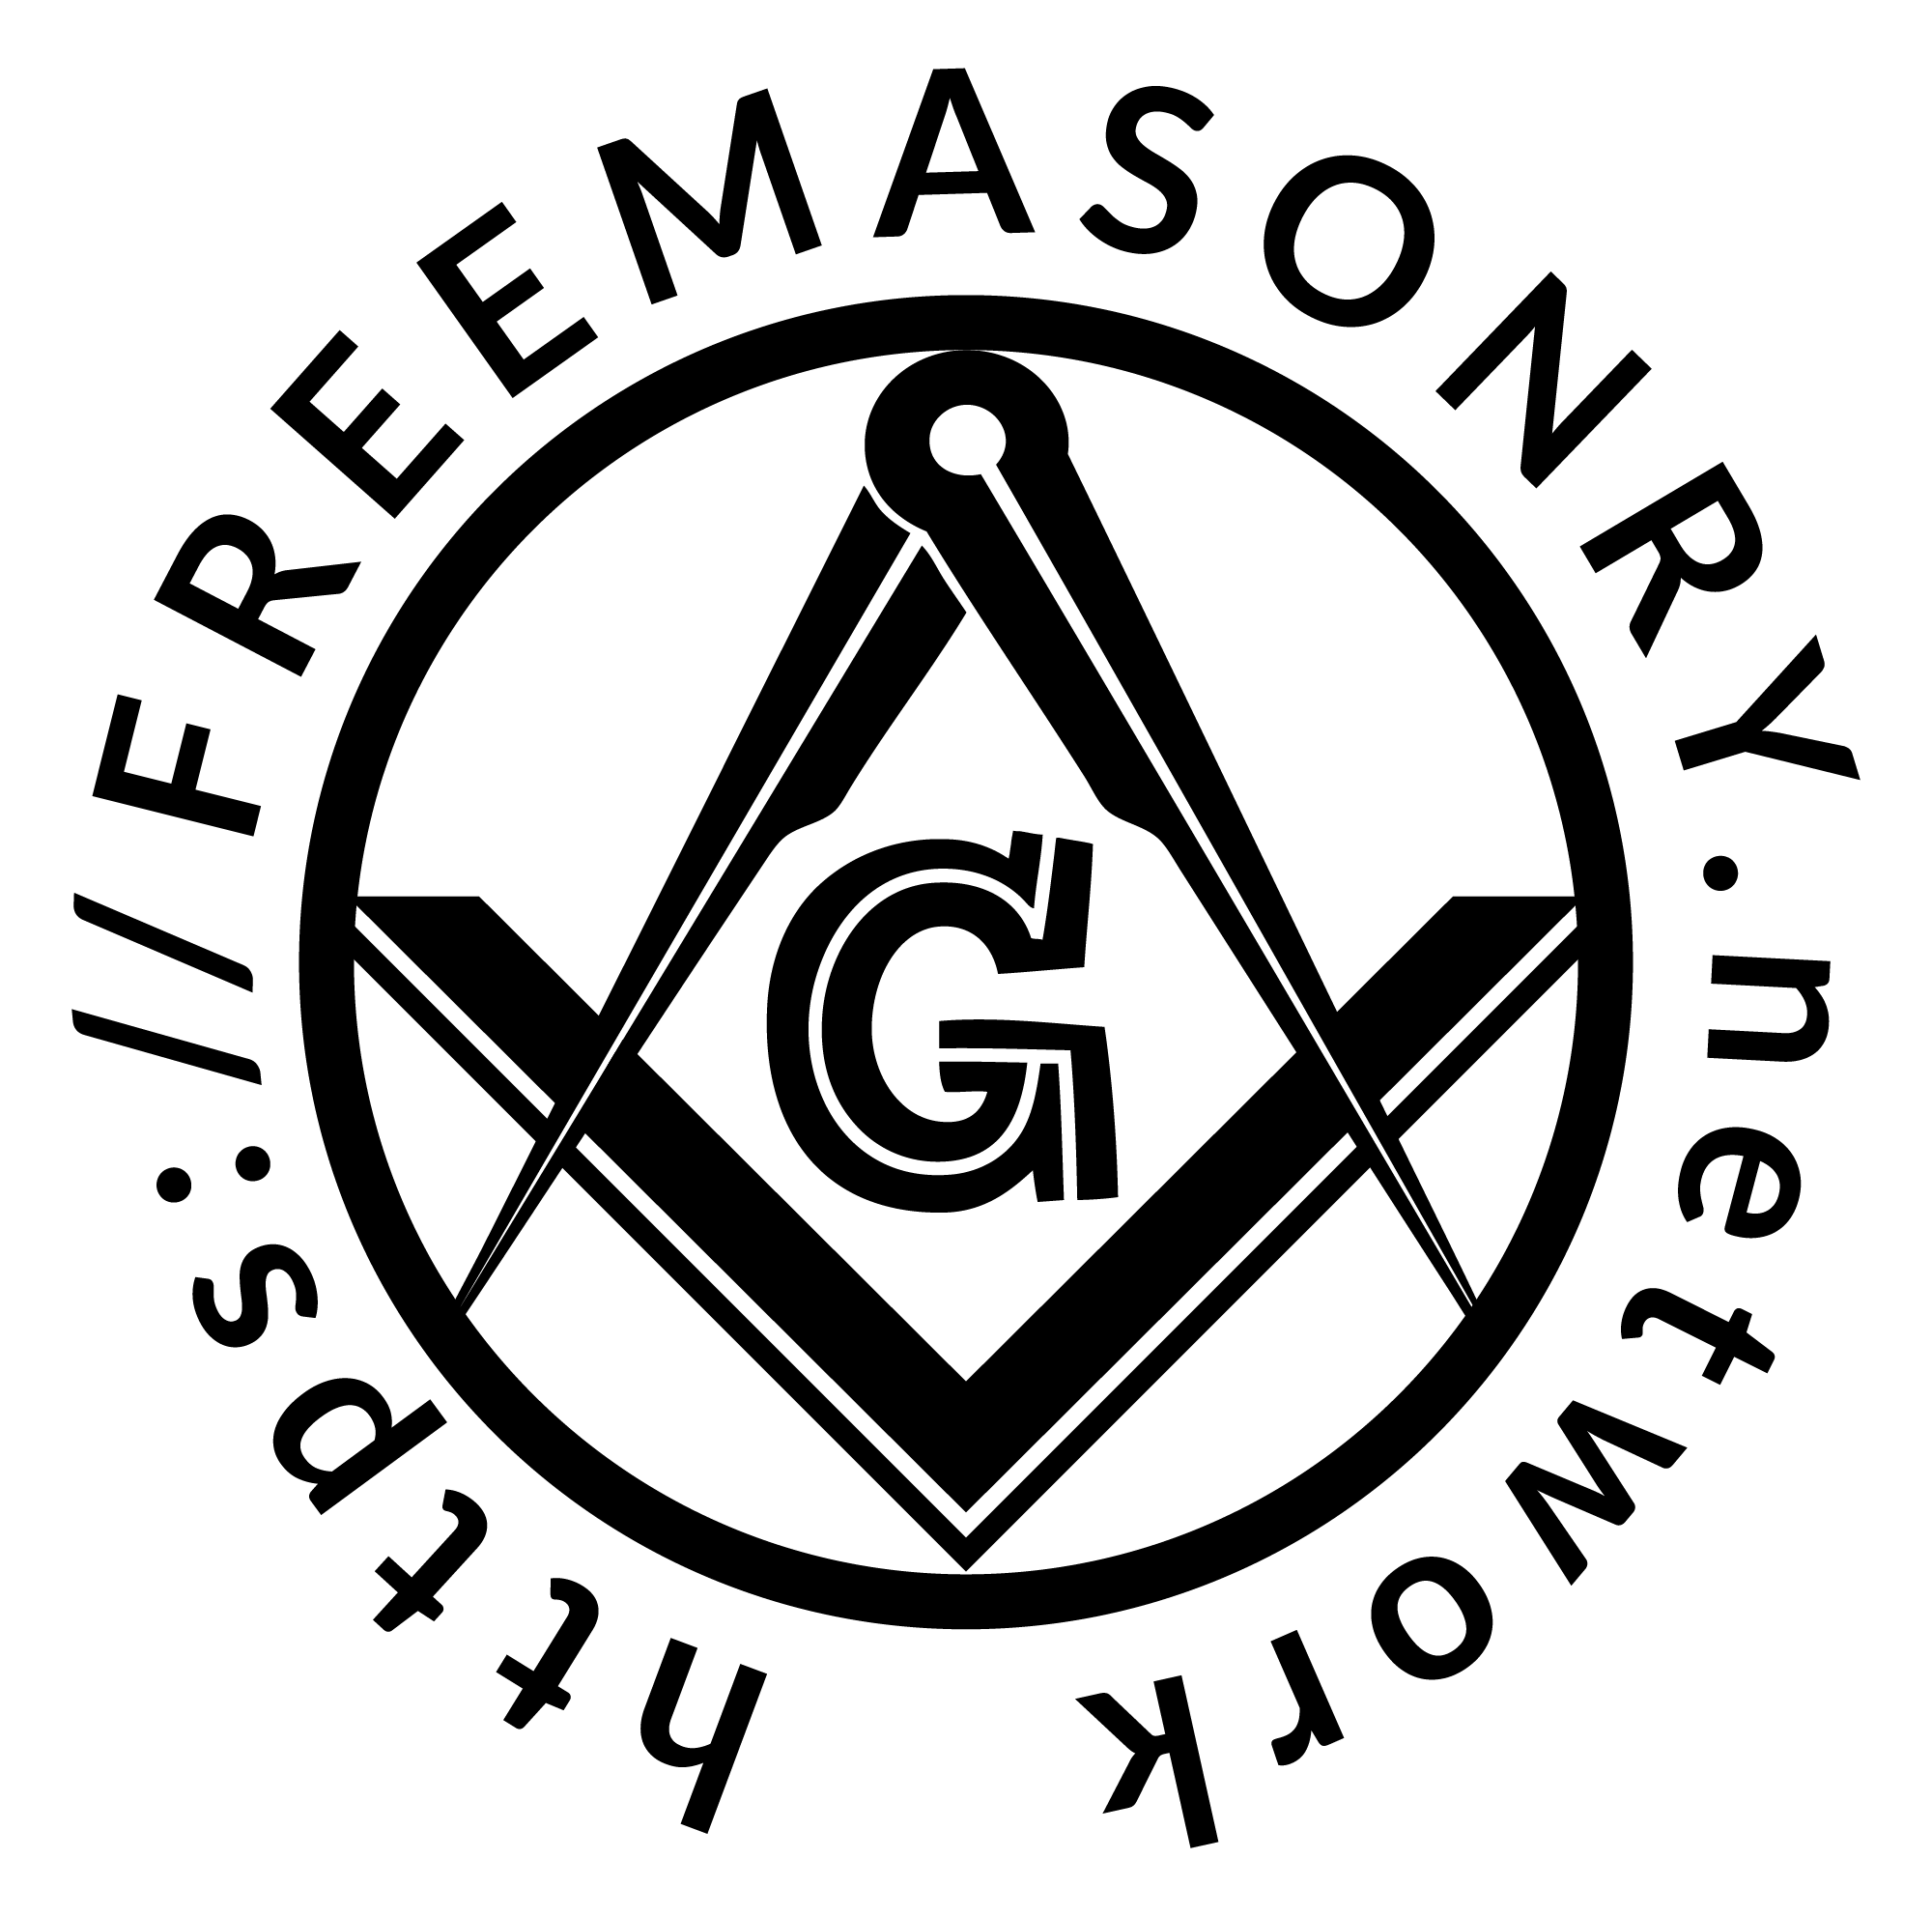 FREEMASONRY FROM THE DISTANCE